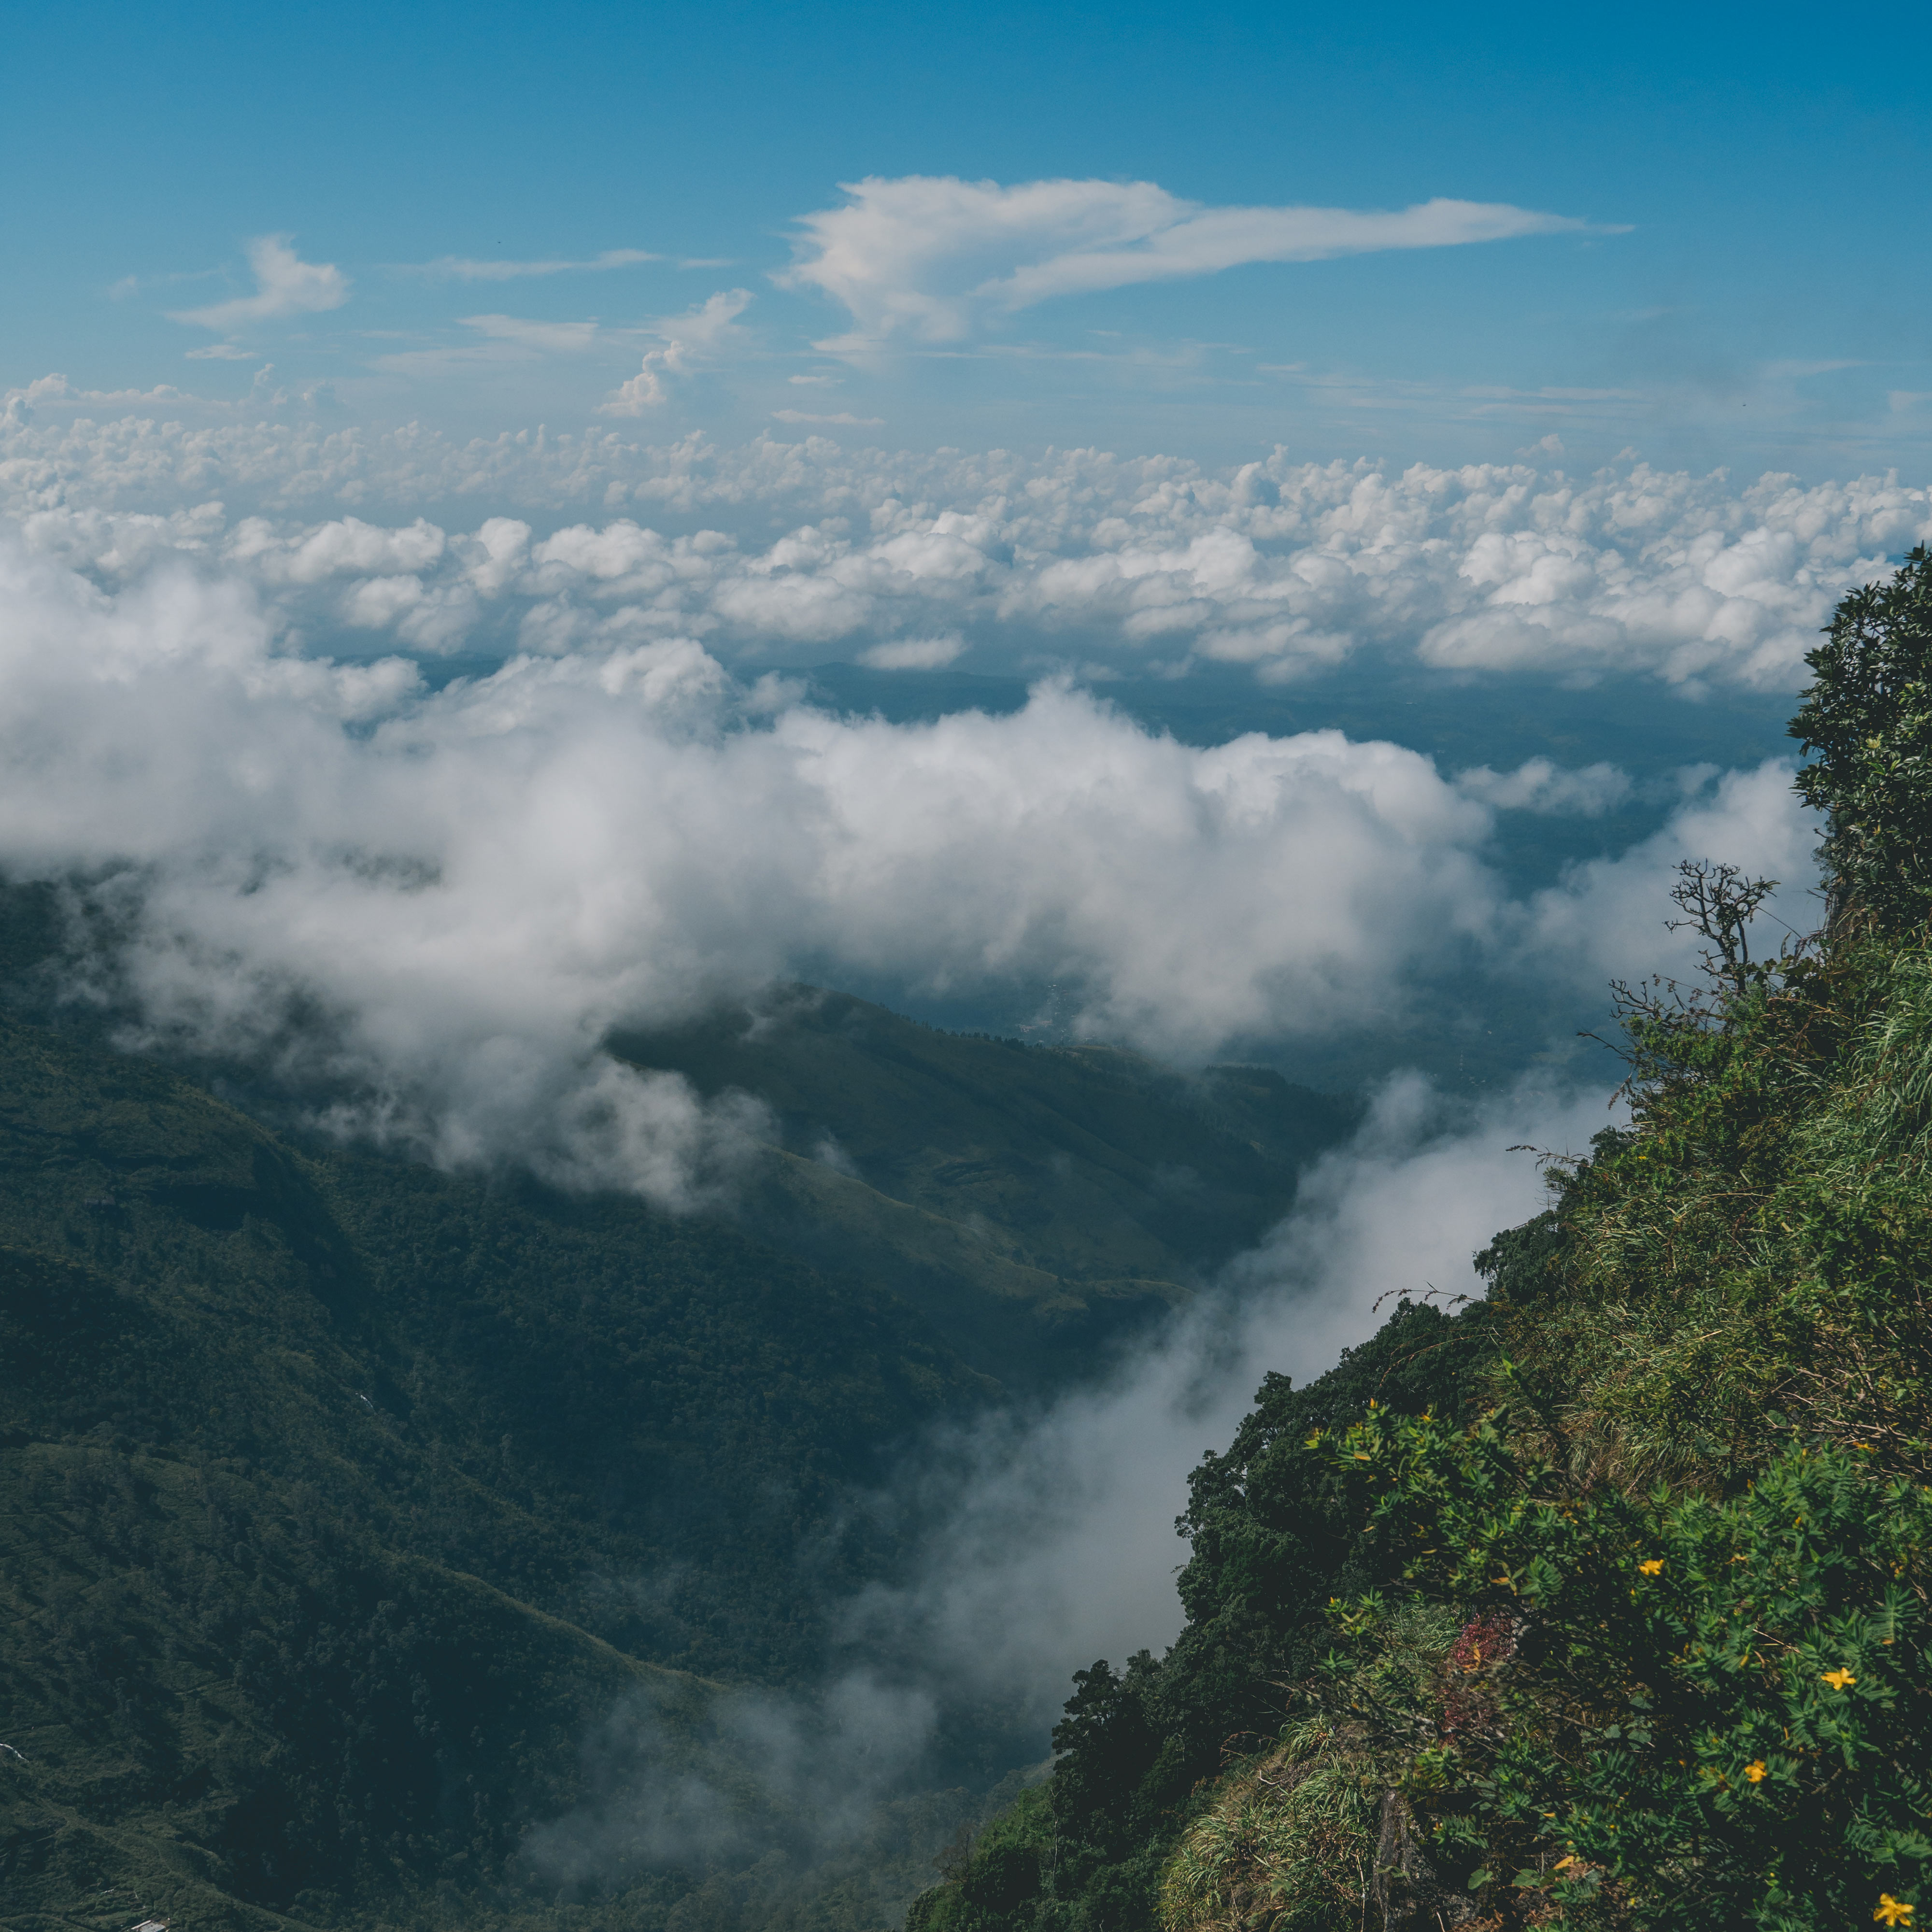 Sri Lanka, Horton Plains, World's End